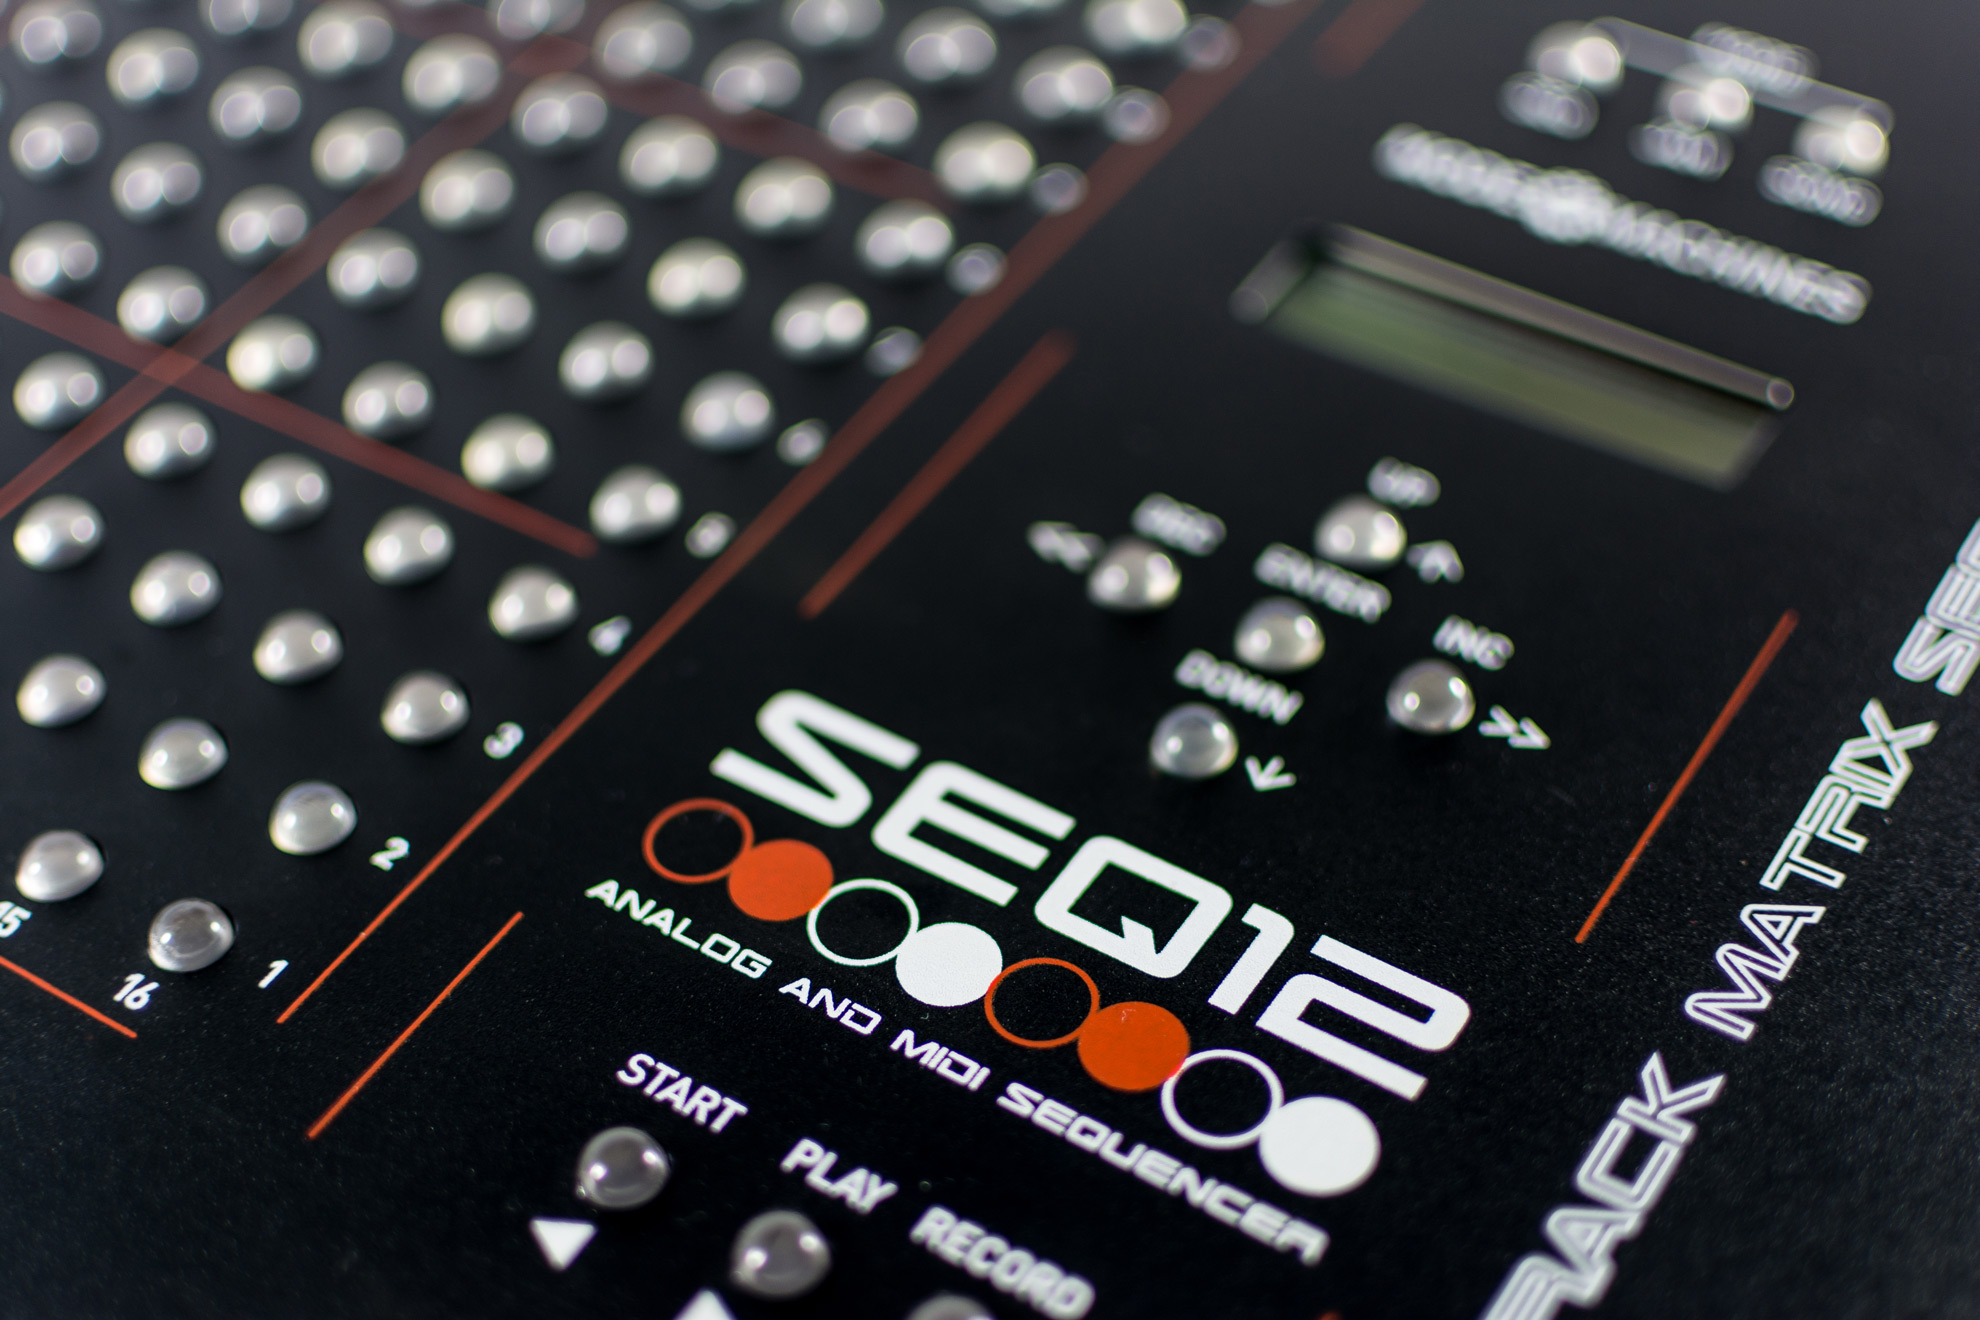 ModeMachines SEQ12 Sequencer